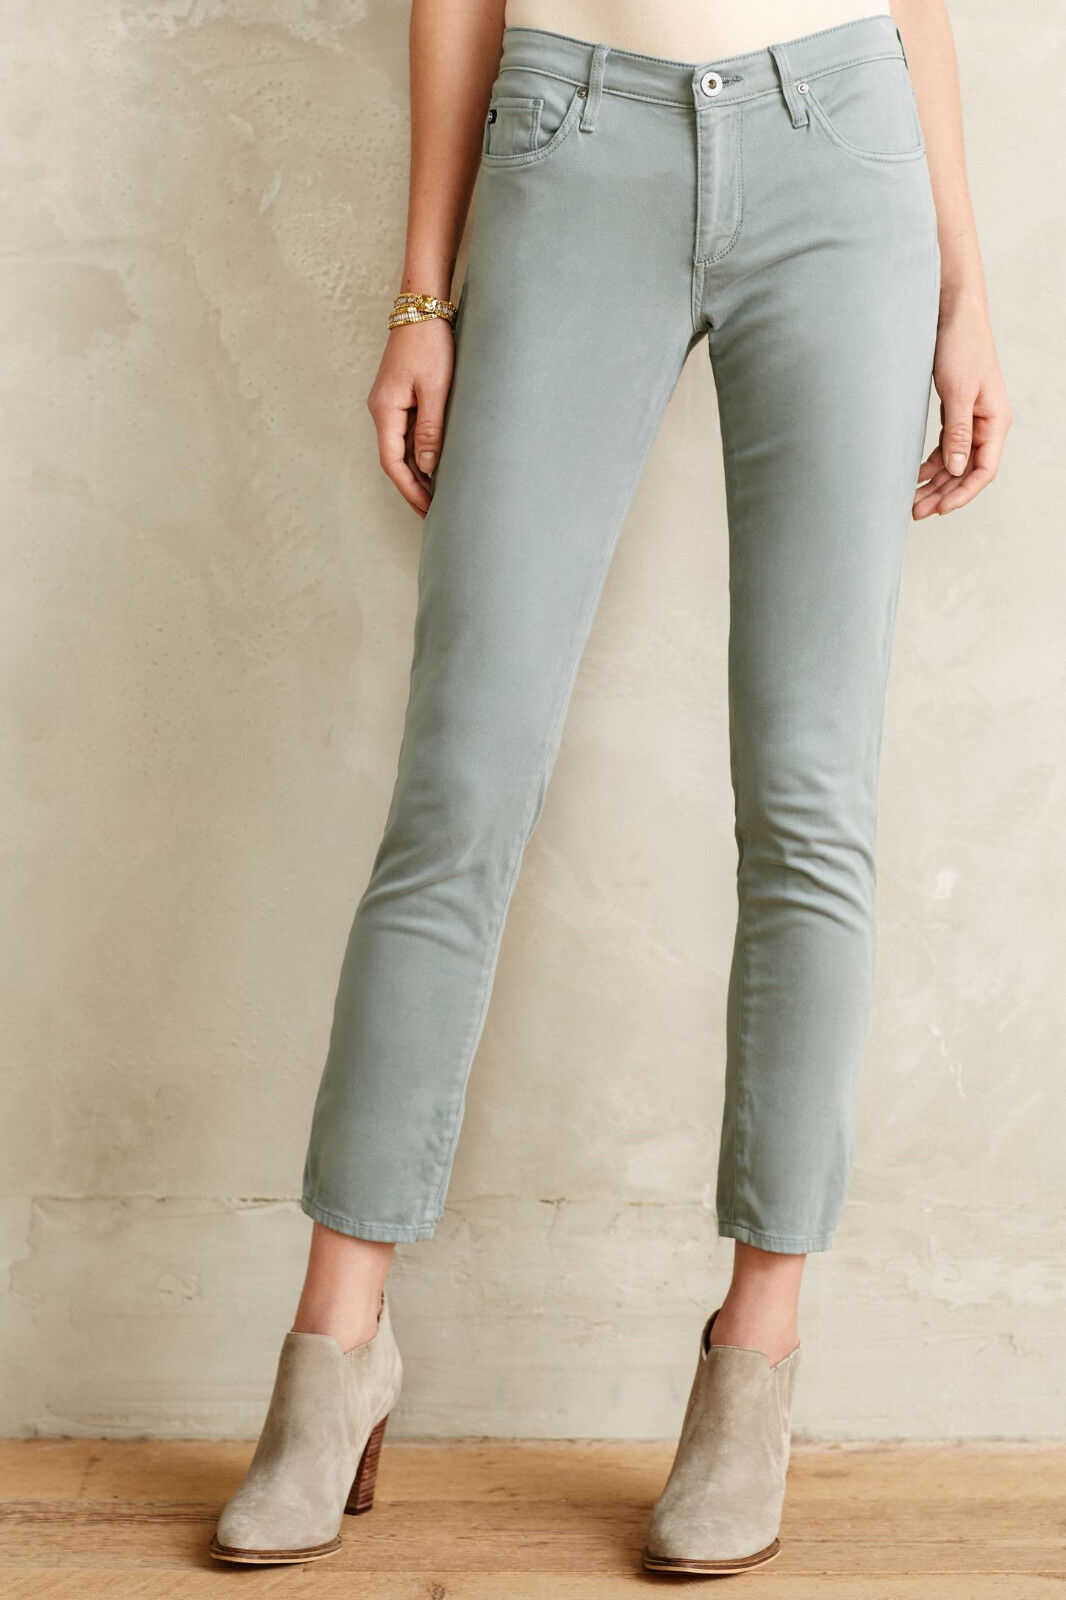 AG Stevie Ankle Sateen Jeans Pants Various Farbes Größe 30, 32 NW ANTHROPOLOGIE T